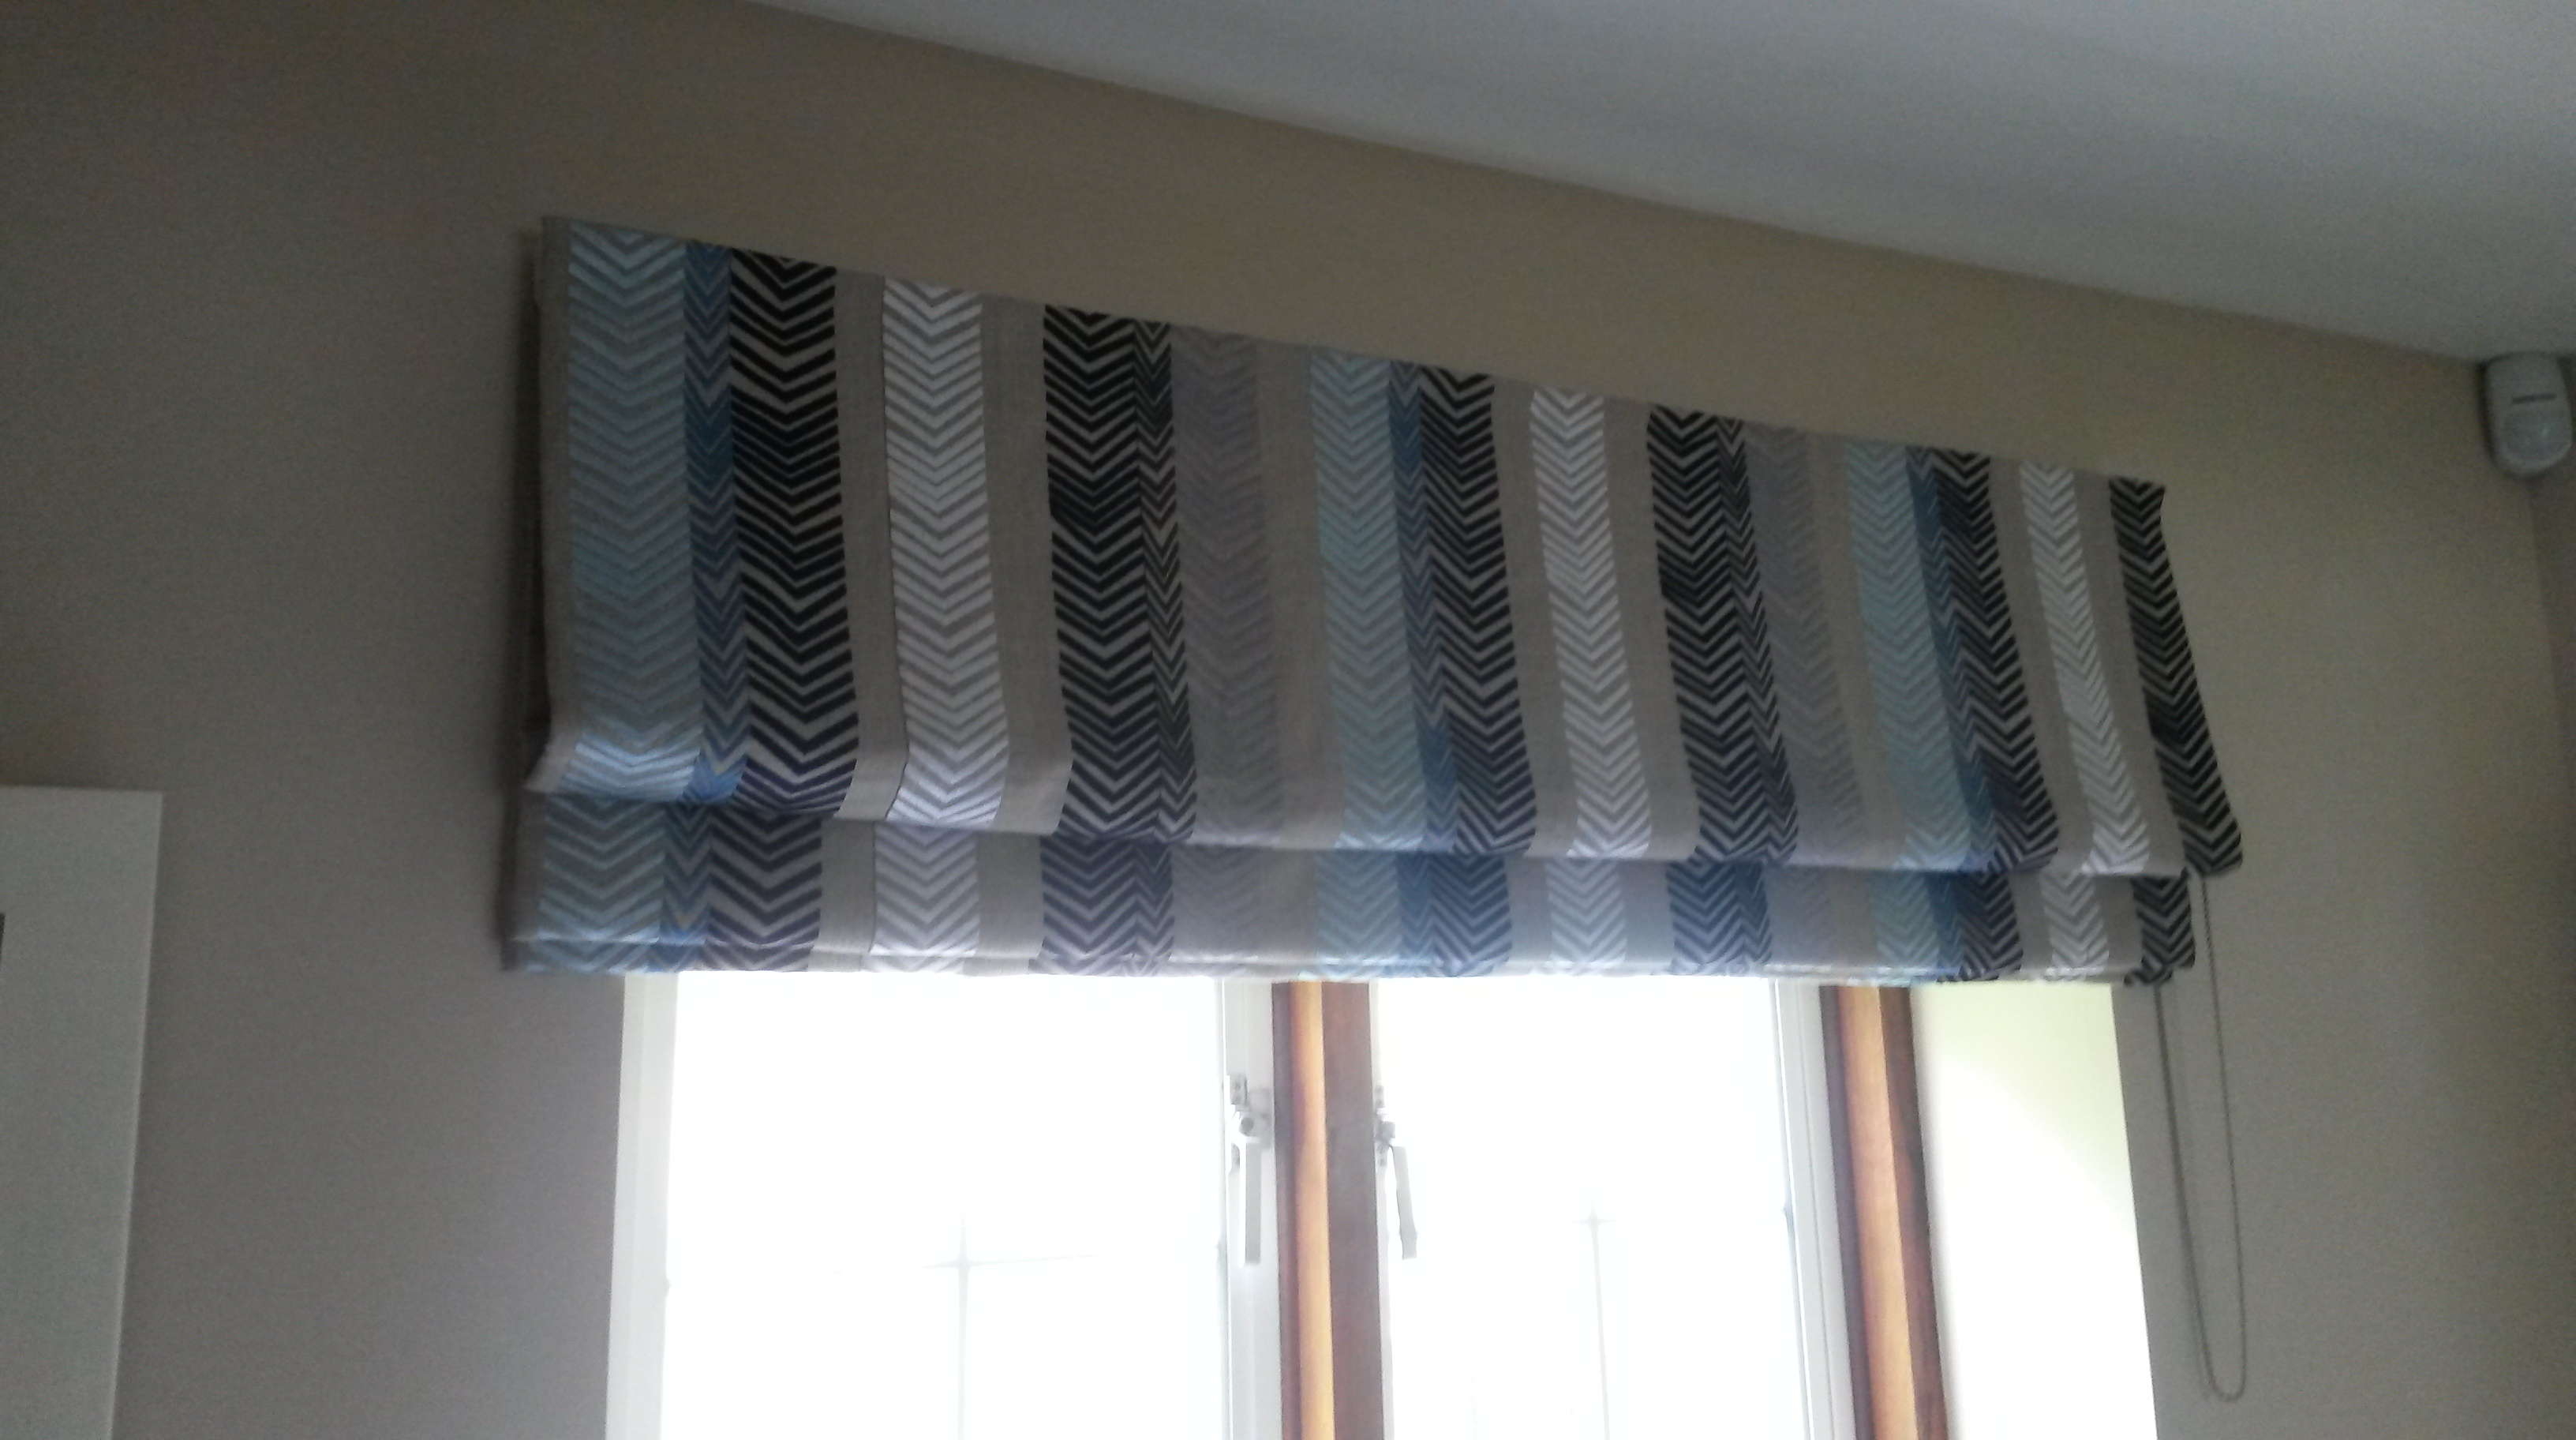 Kit Kemp Bookends used for made to measure roman blind - Oxford